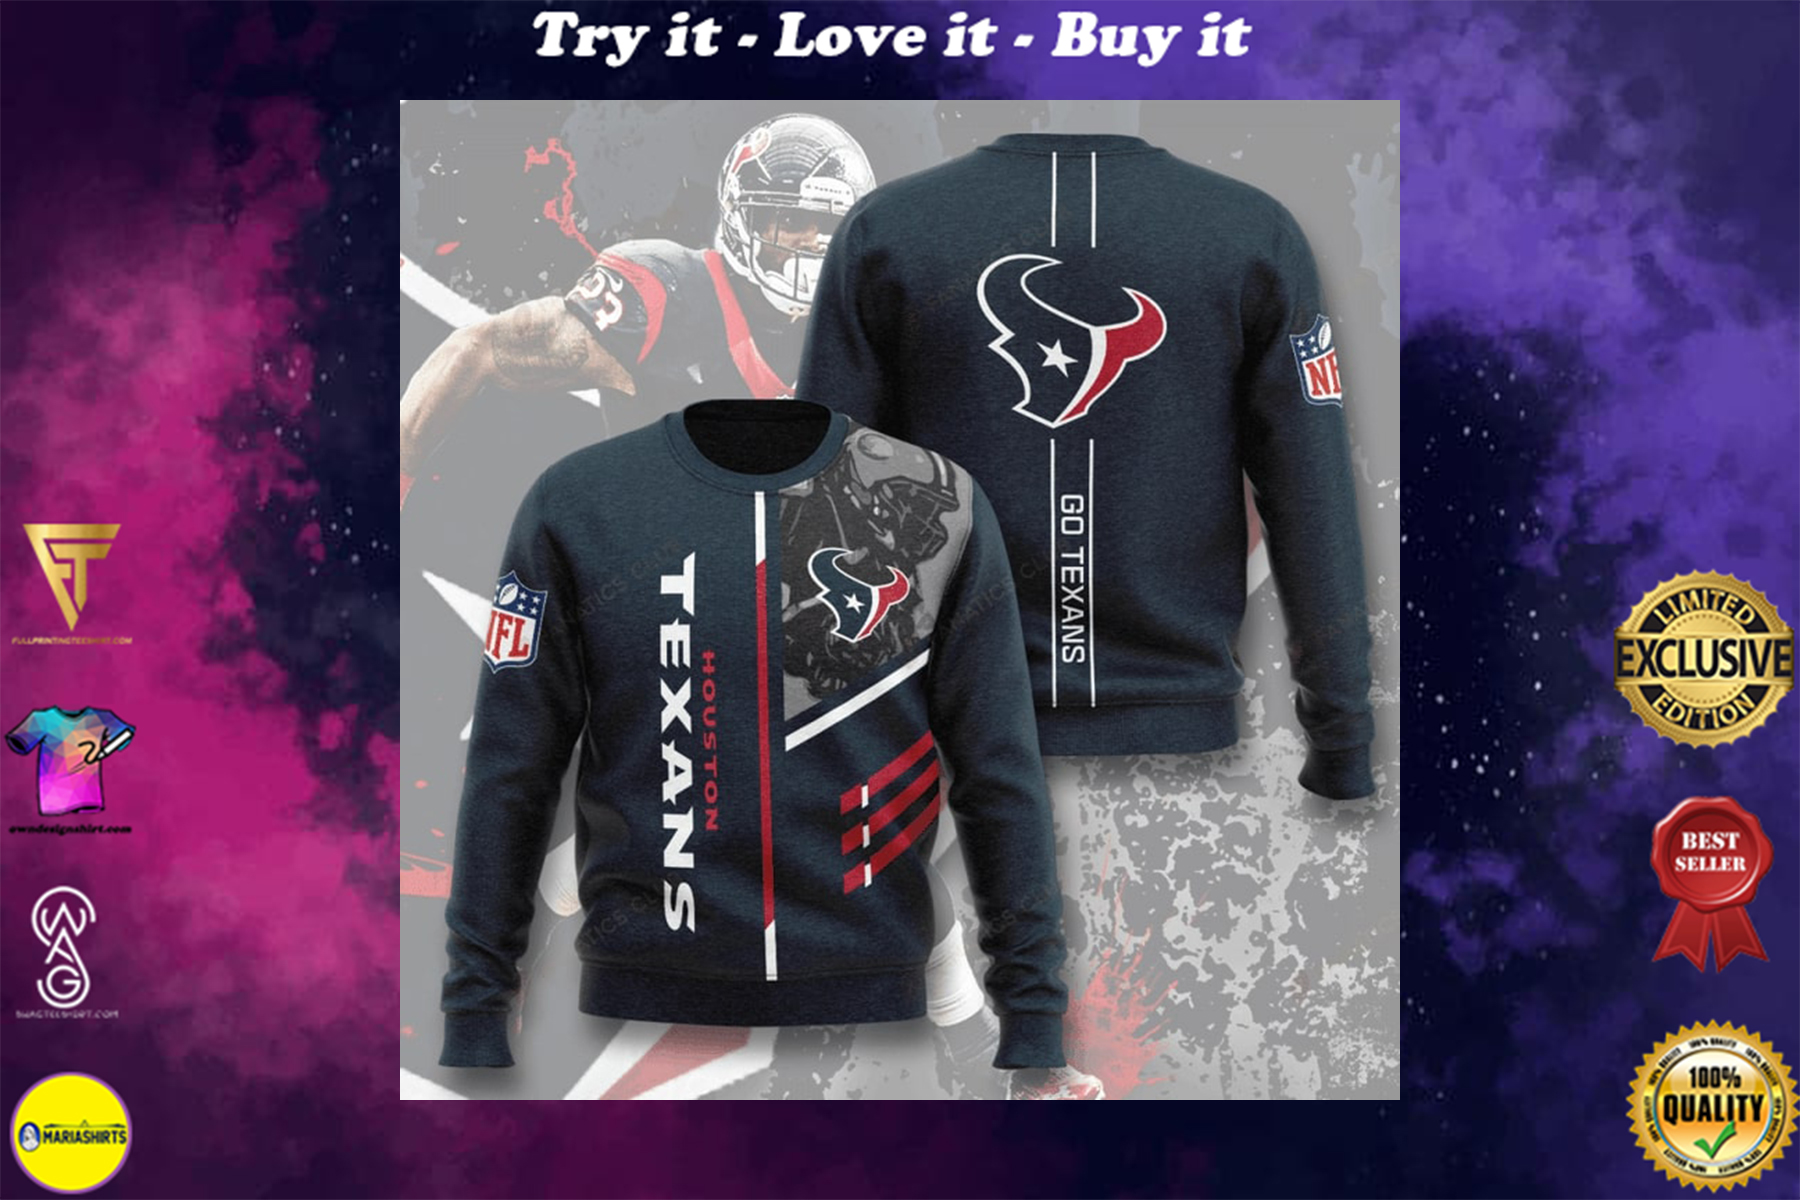 [special edition] national football league houston texans go texans full printing ugly sweater - maria